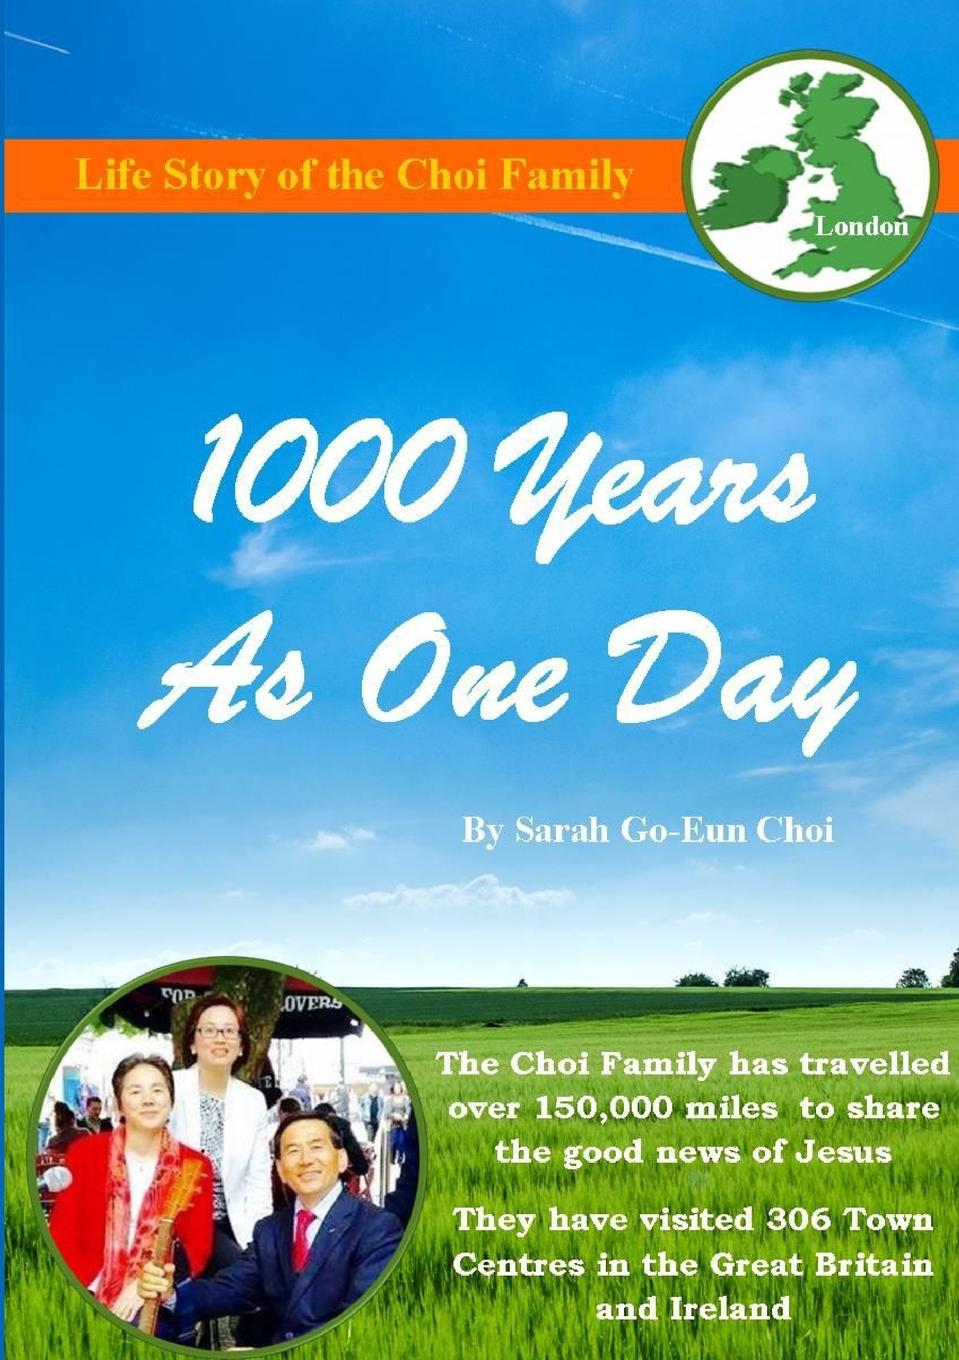 Sarah Go-Eun Choi 1000 Years As One Day derek acorah haunted britain and ireland over 100 of the scariest places to visit in the uk and ireland